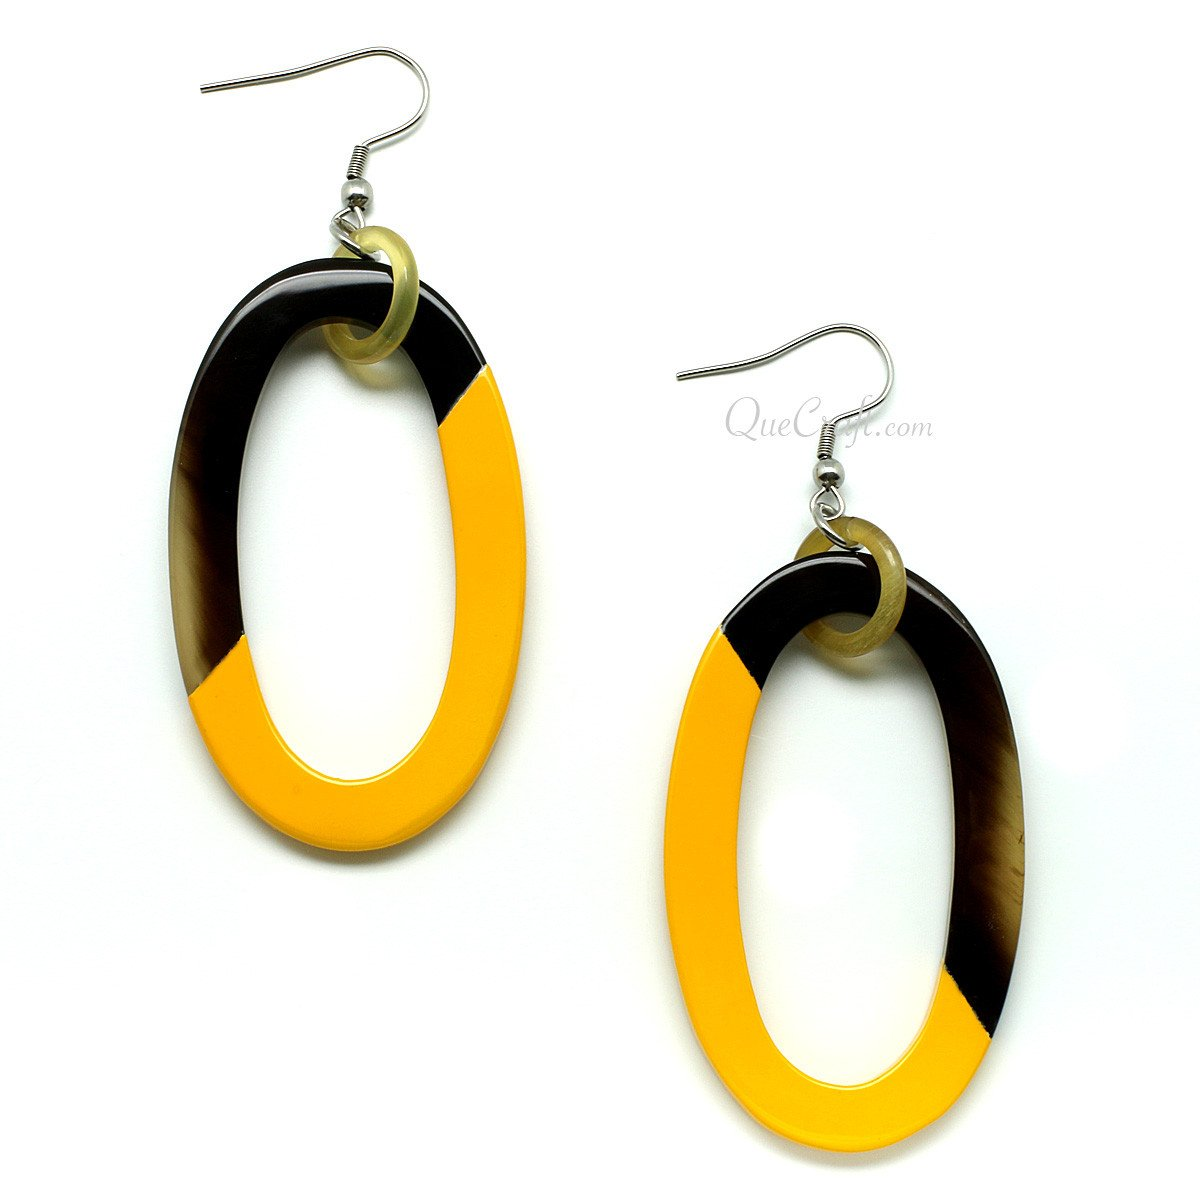 Horn & Lacquer Earrings #6267 - HORN.JEWELRY